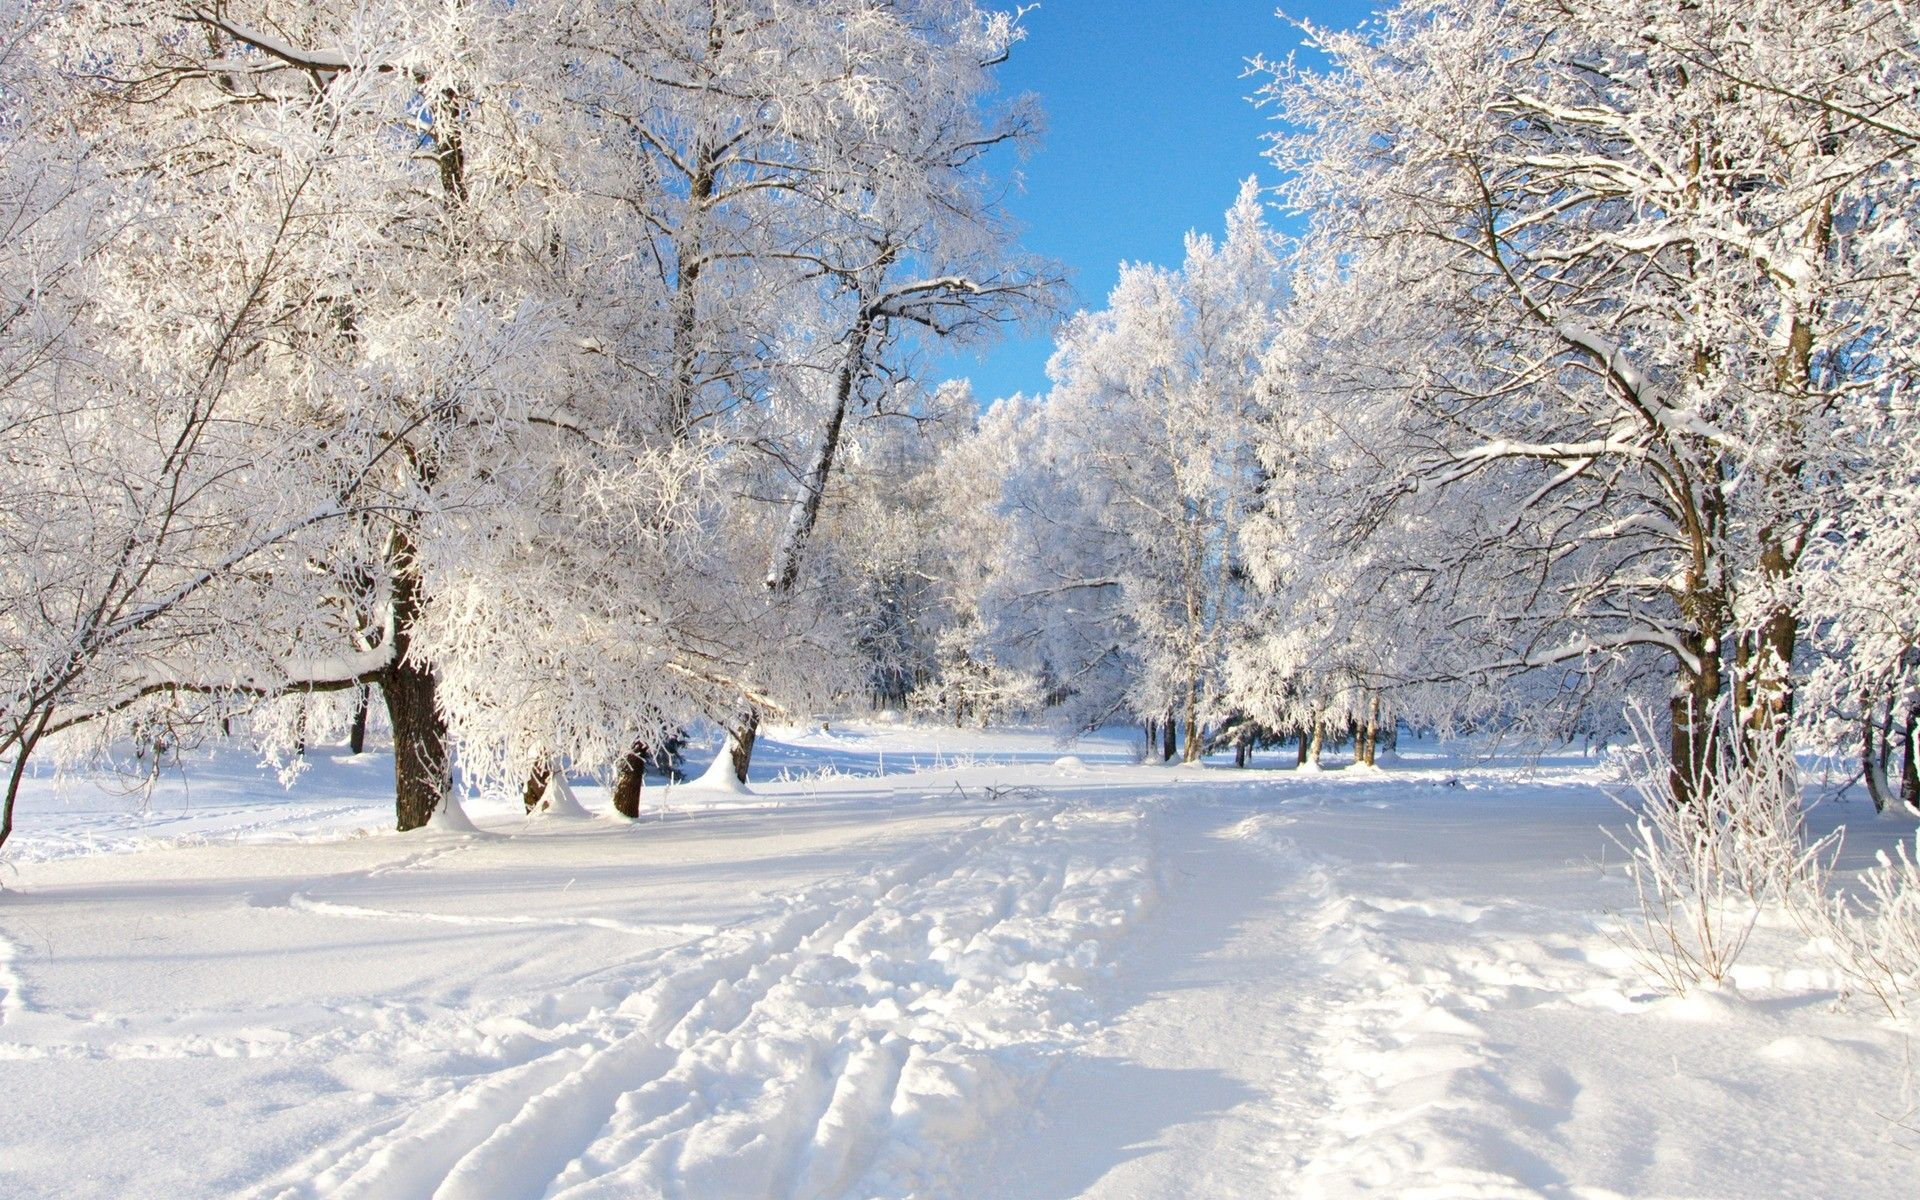 Winter Trees Winter Scenery Winter Wallpaper Desktop Winter Desktop Background